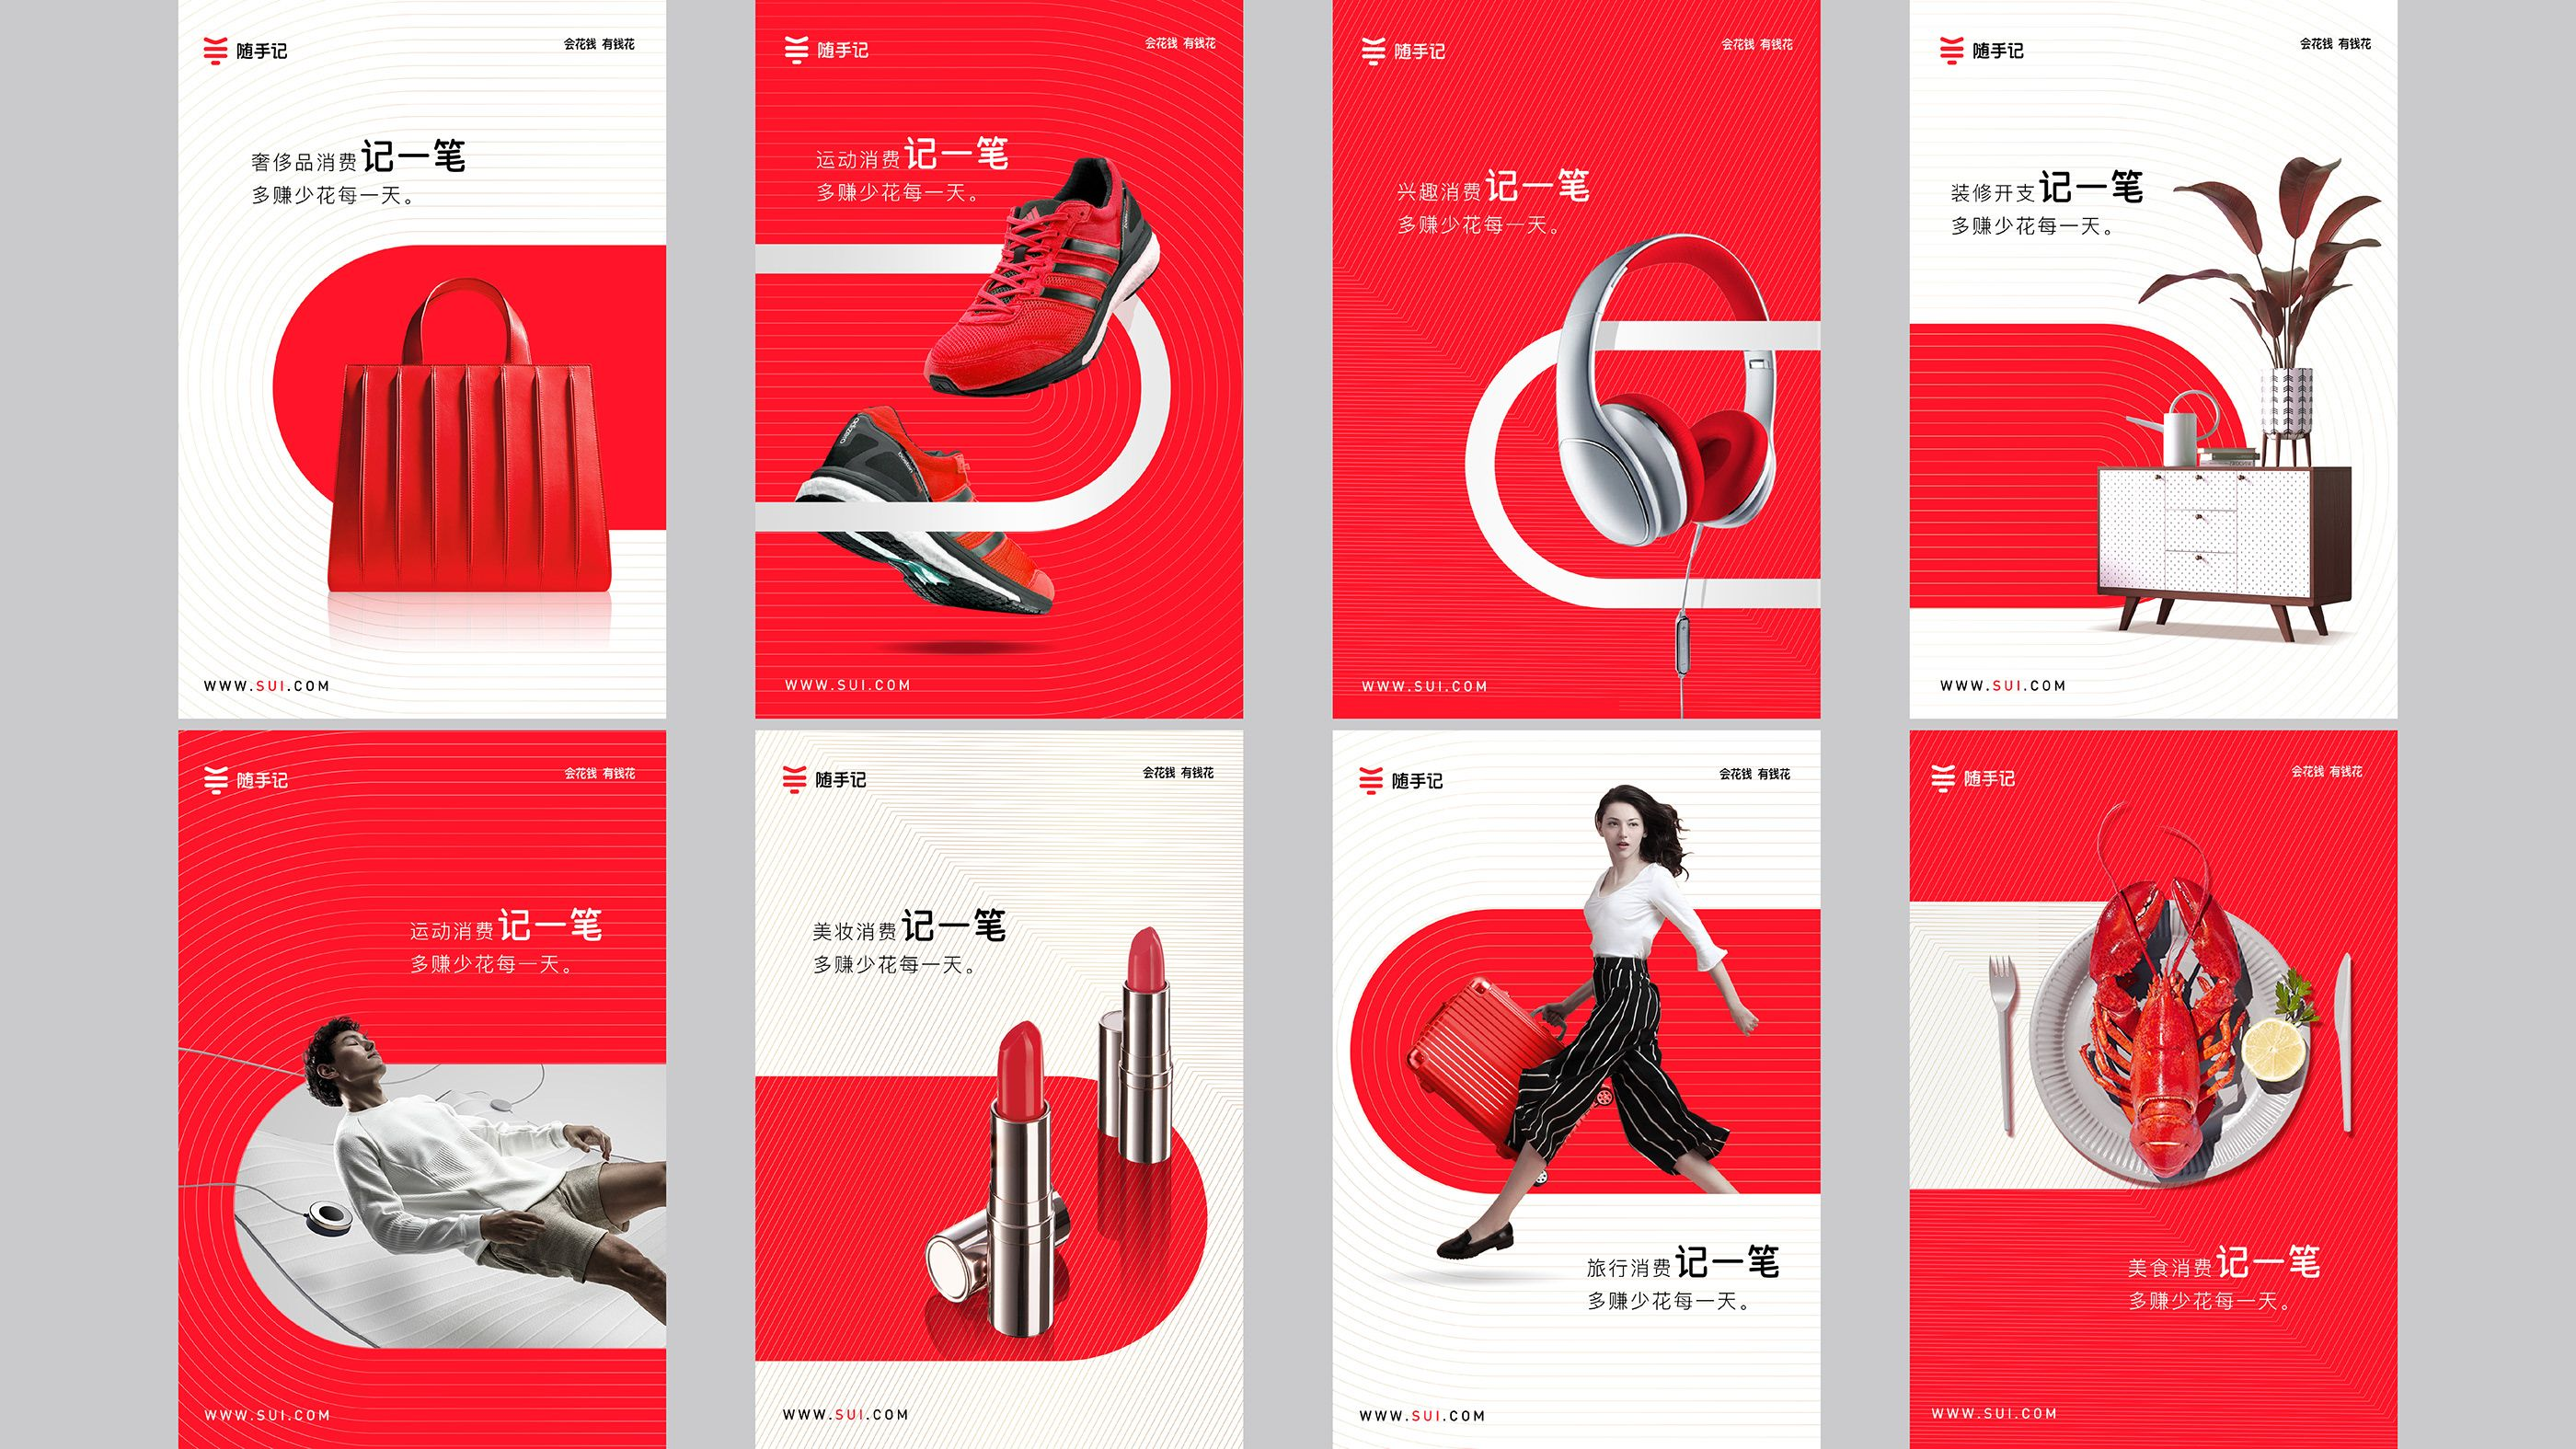 随手记品牌升级/Suishou Brand Visual Redesign on Behance